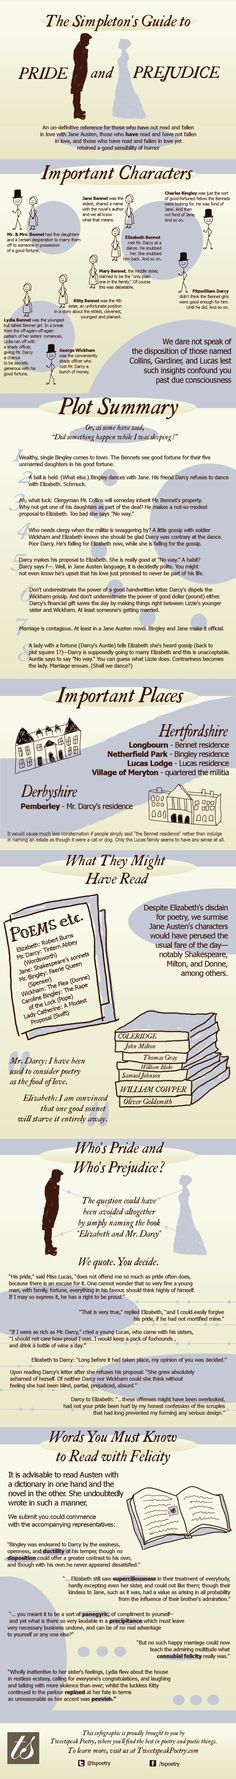 The Simpleton's Guide to Pride and Prejudice ~  lol, everyone needs crib notes, right?!  ha ha